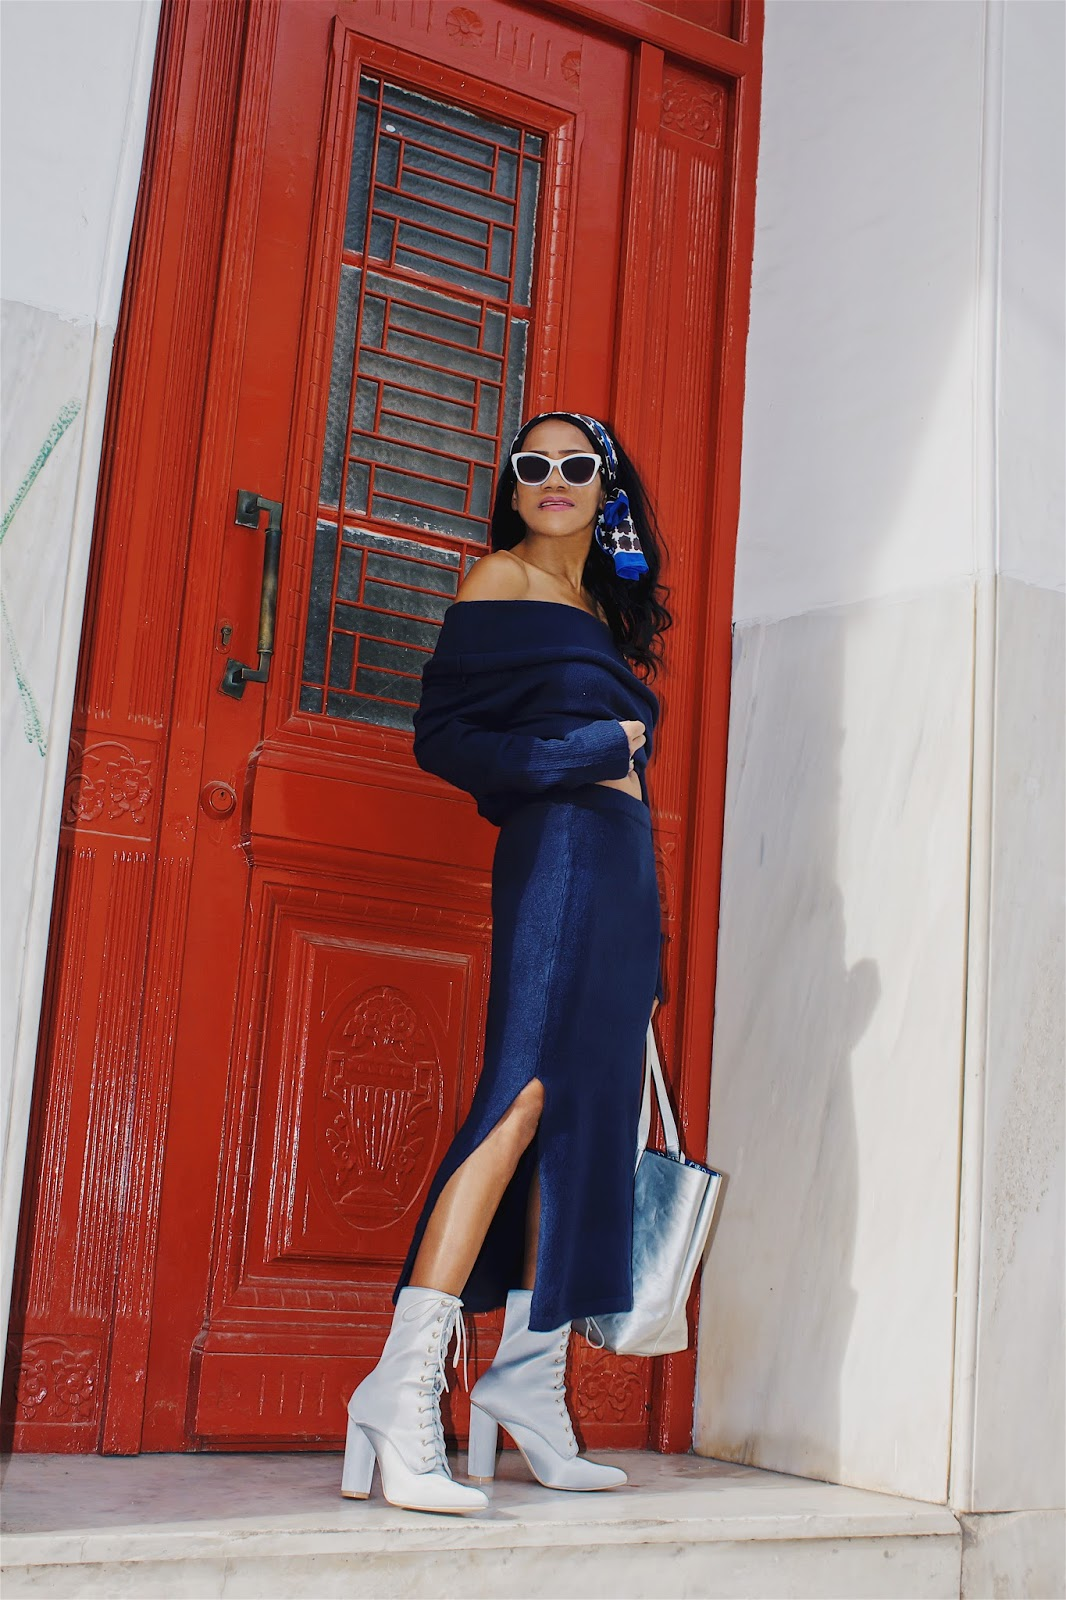 8895163e326 I ve styled it with a navy knitted sweater and matching skirt from  Nakdfashion last winter collection. I ve added my silver reversible tote  bag and ...